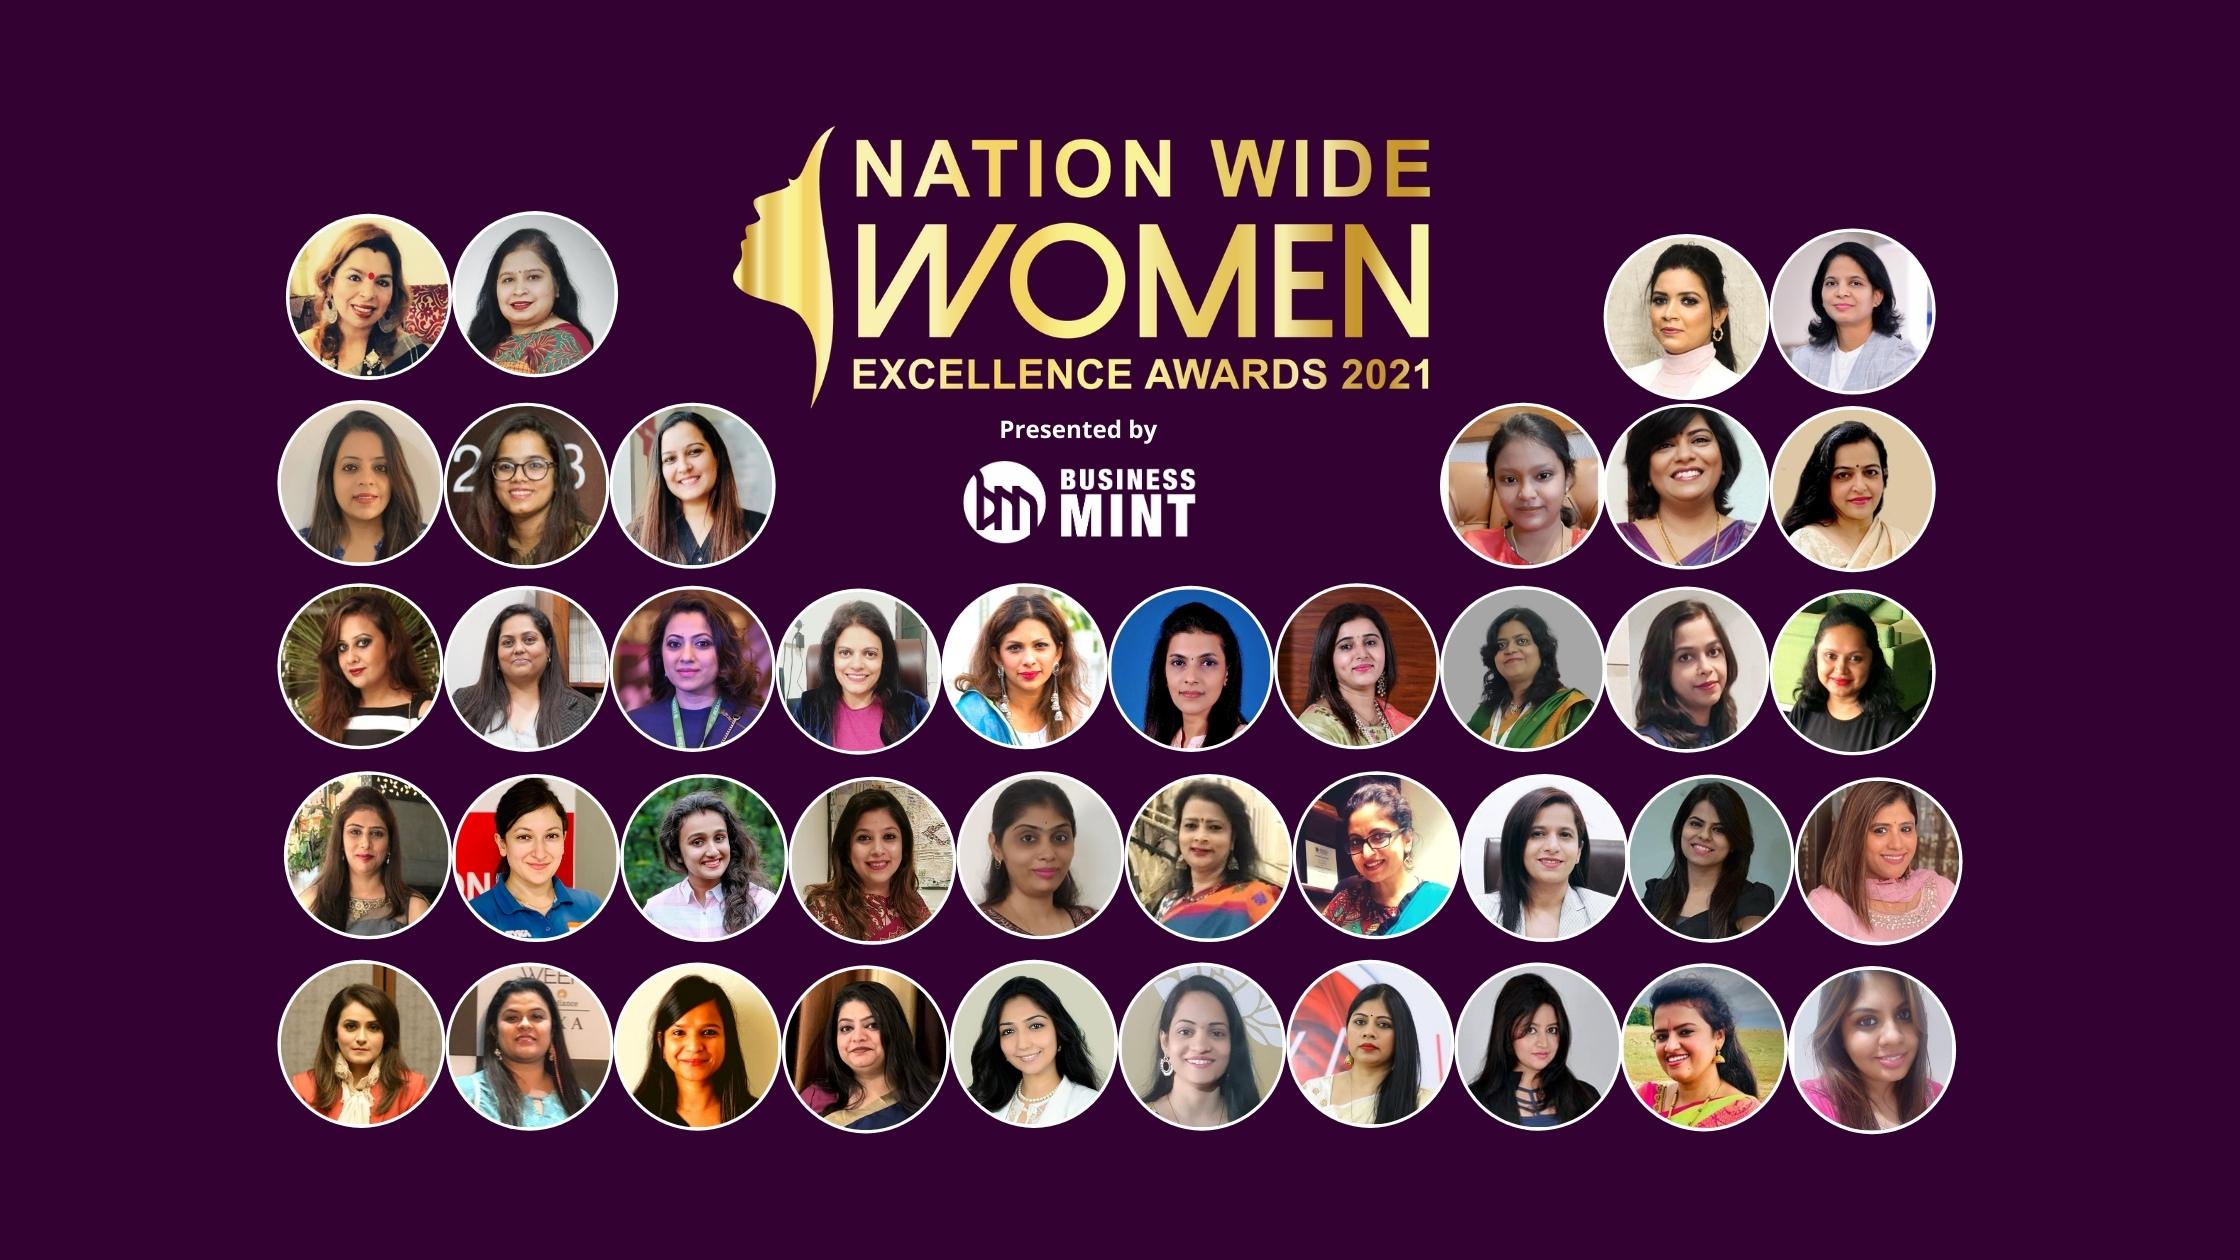 Business Mint Presents Nationwide Women Excellence Awards – 2021 on International Women's Day